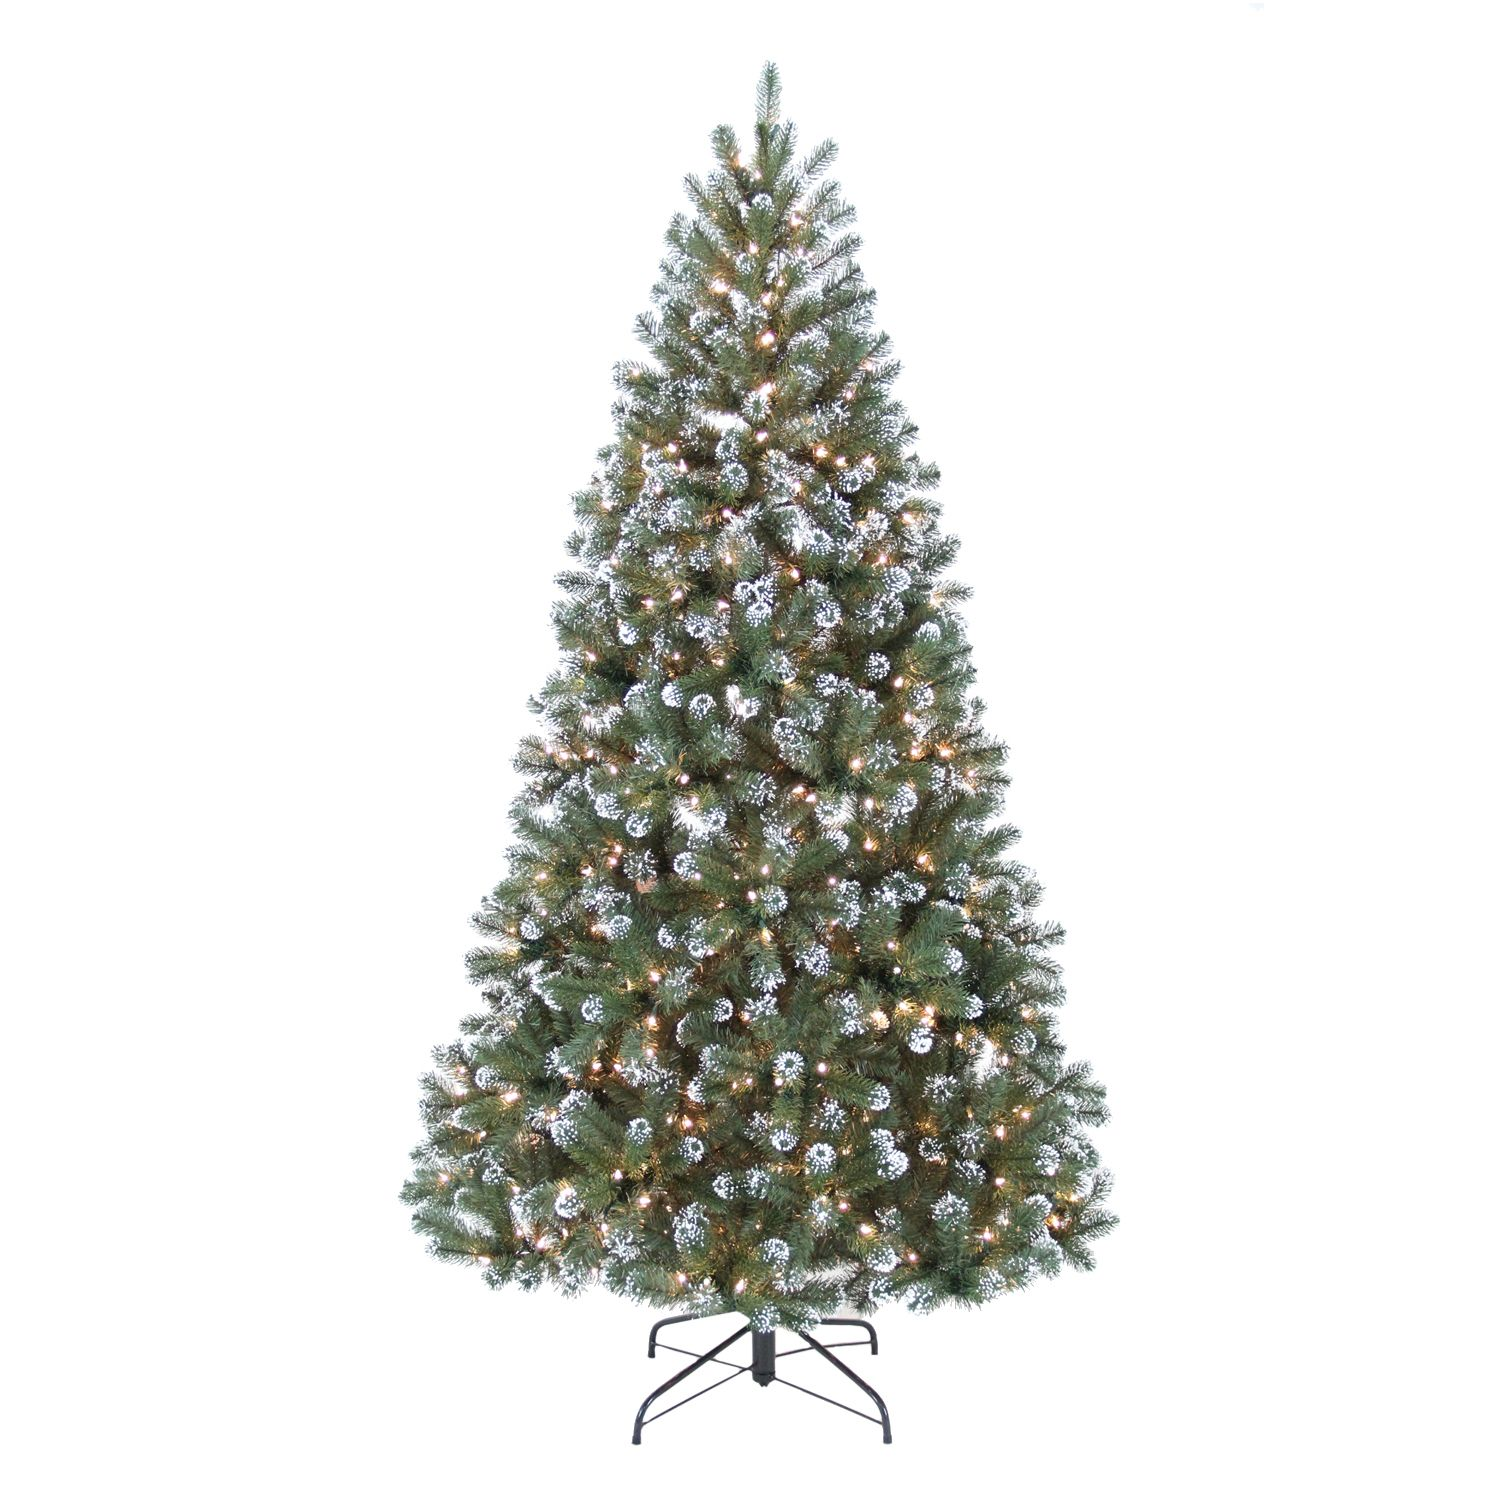 Christmas Tree Sale Black Friday: Kohl's Black Friday: Christmas Trees As Much As 75% Off